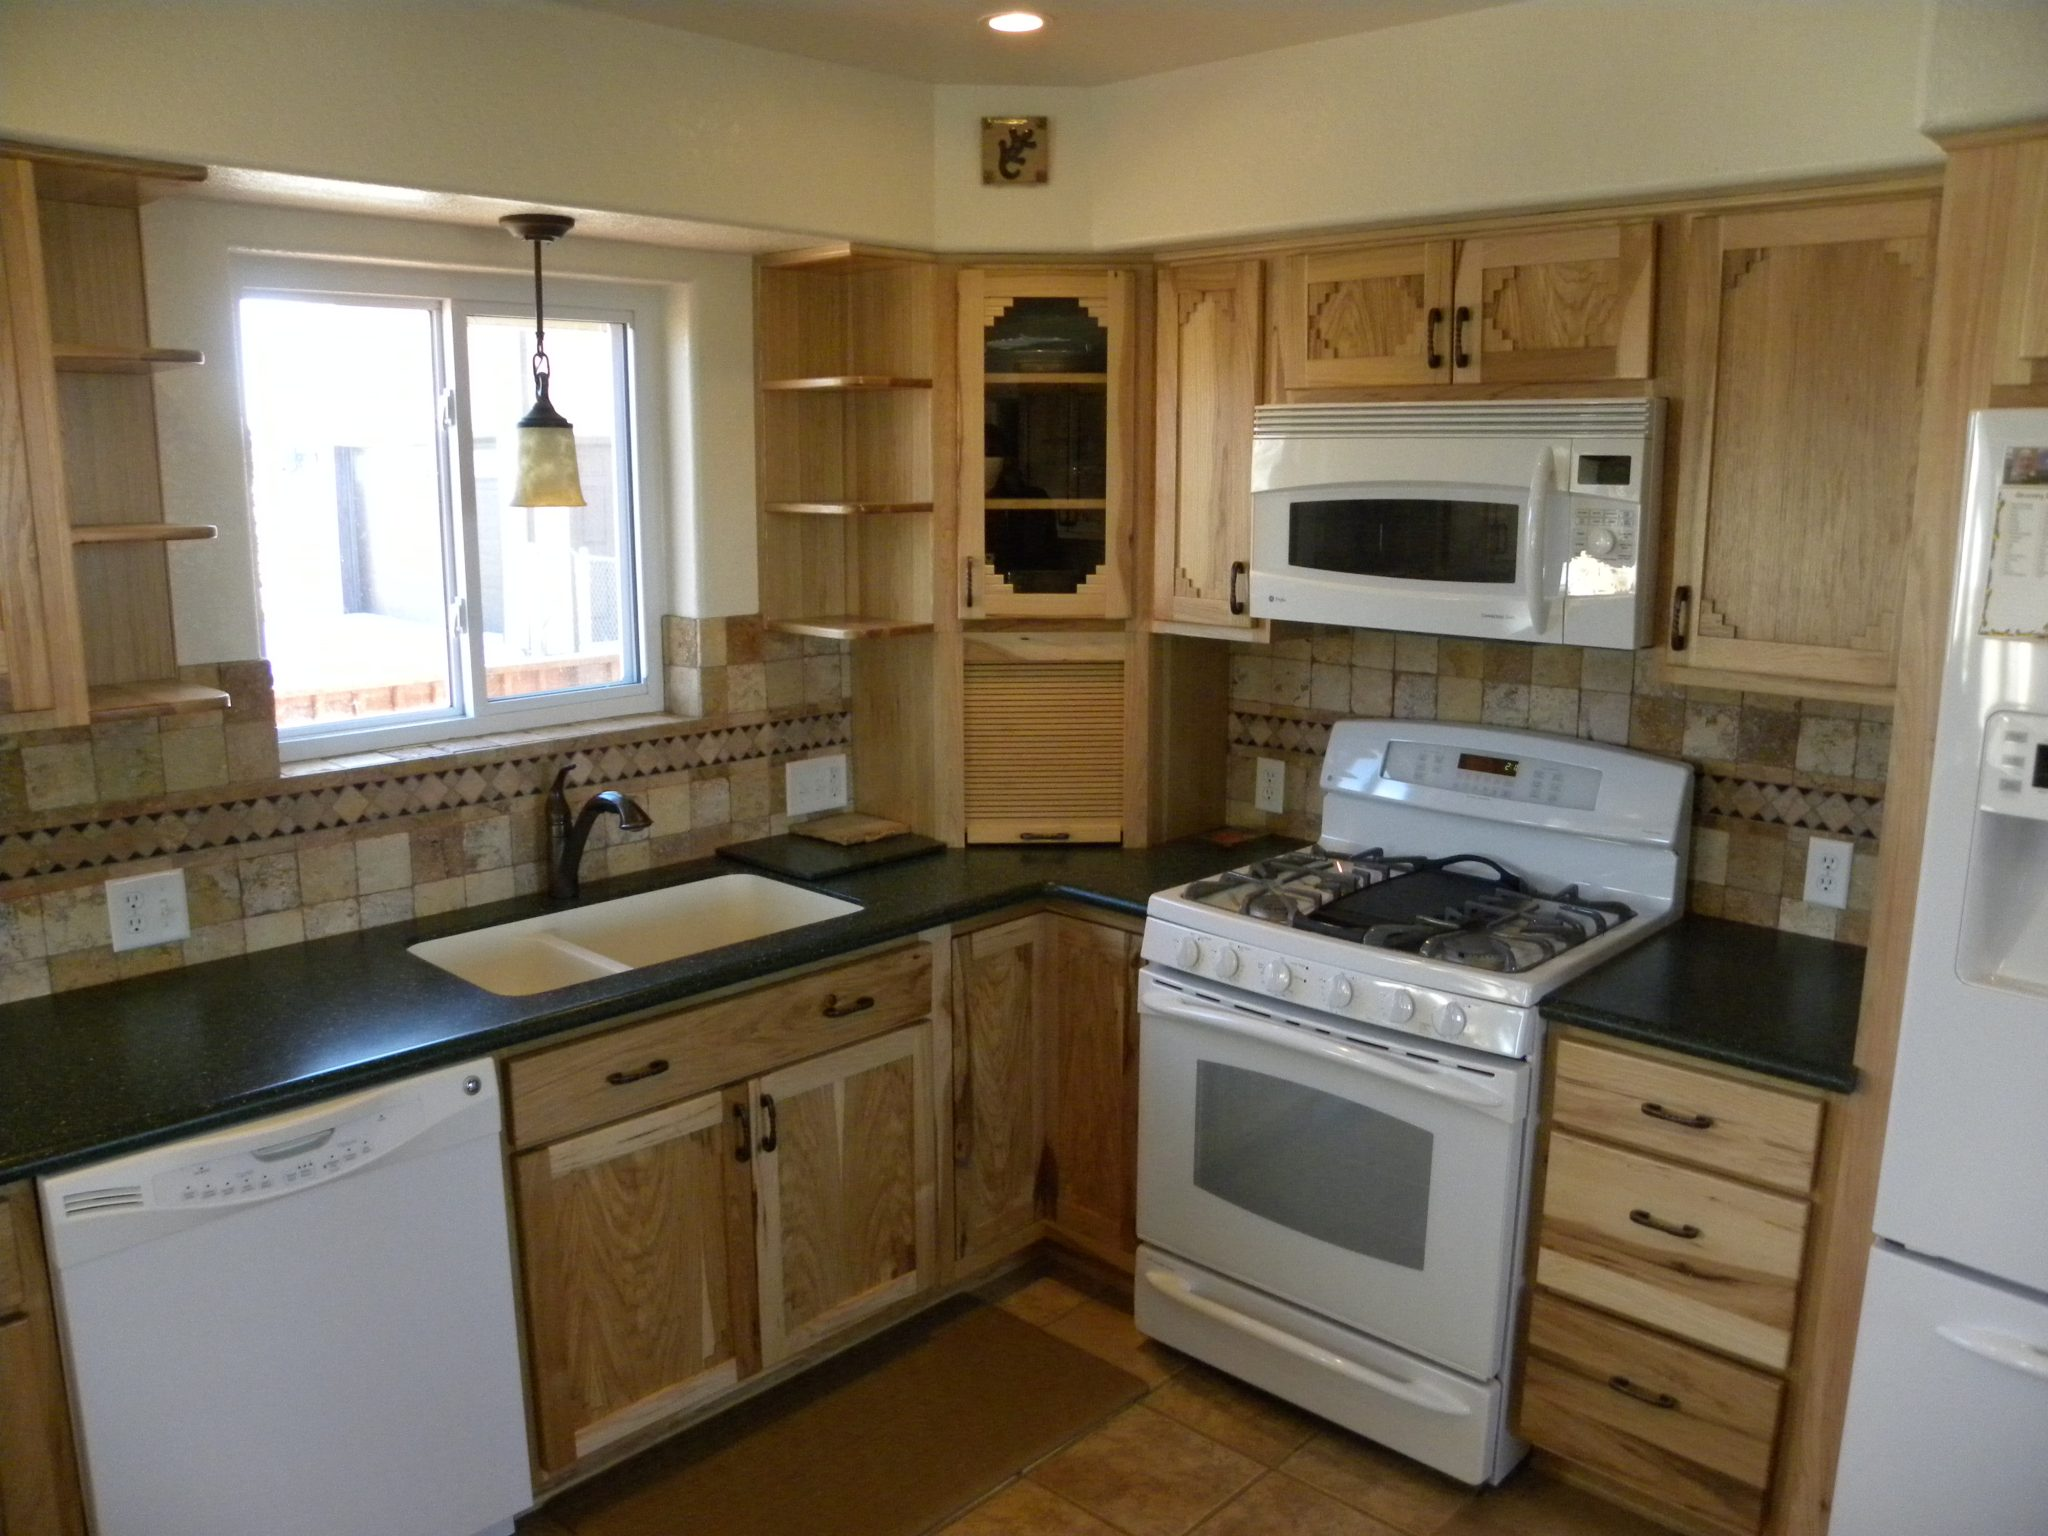 newly remodeled kitchen with wooden cabinets and granite countertops - Newly Remodeled Kitchens